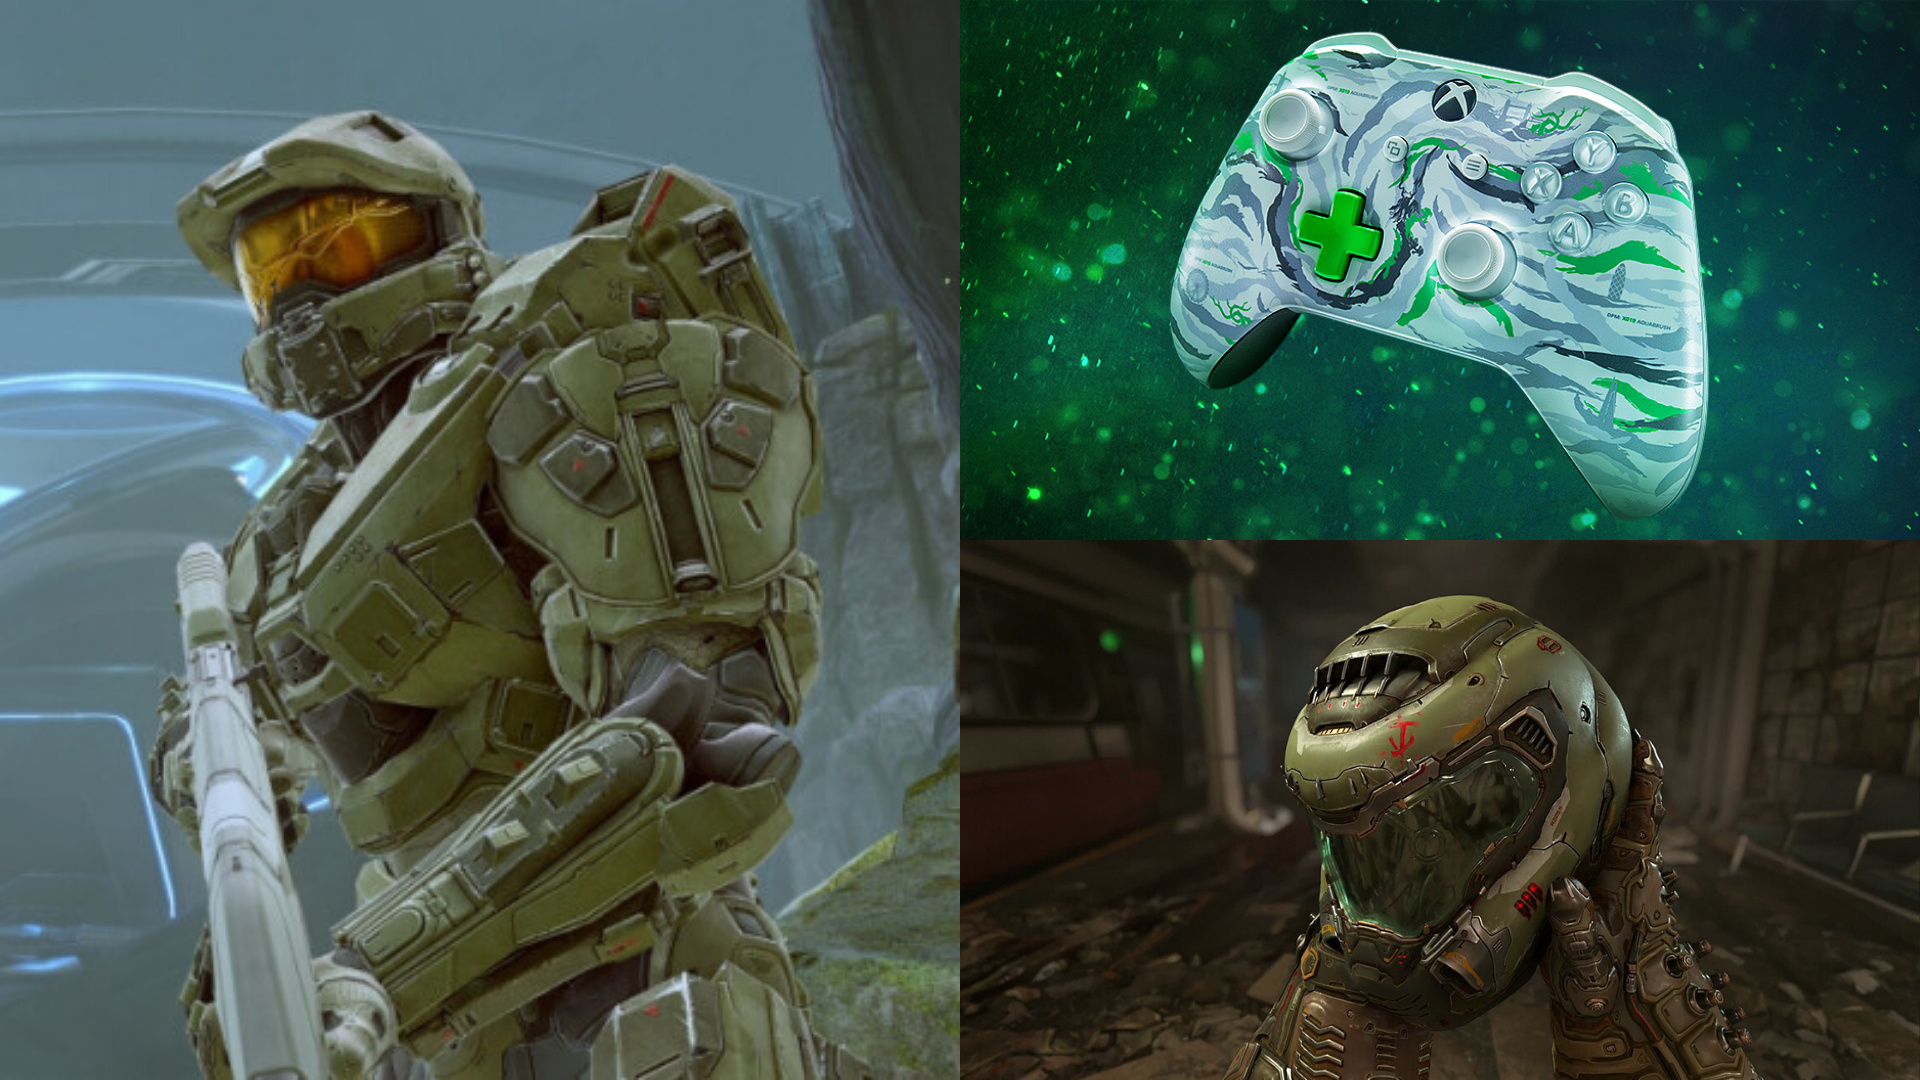 Random Do You See A Controller Master Chief Or Doomguy Xbox News